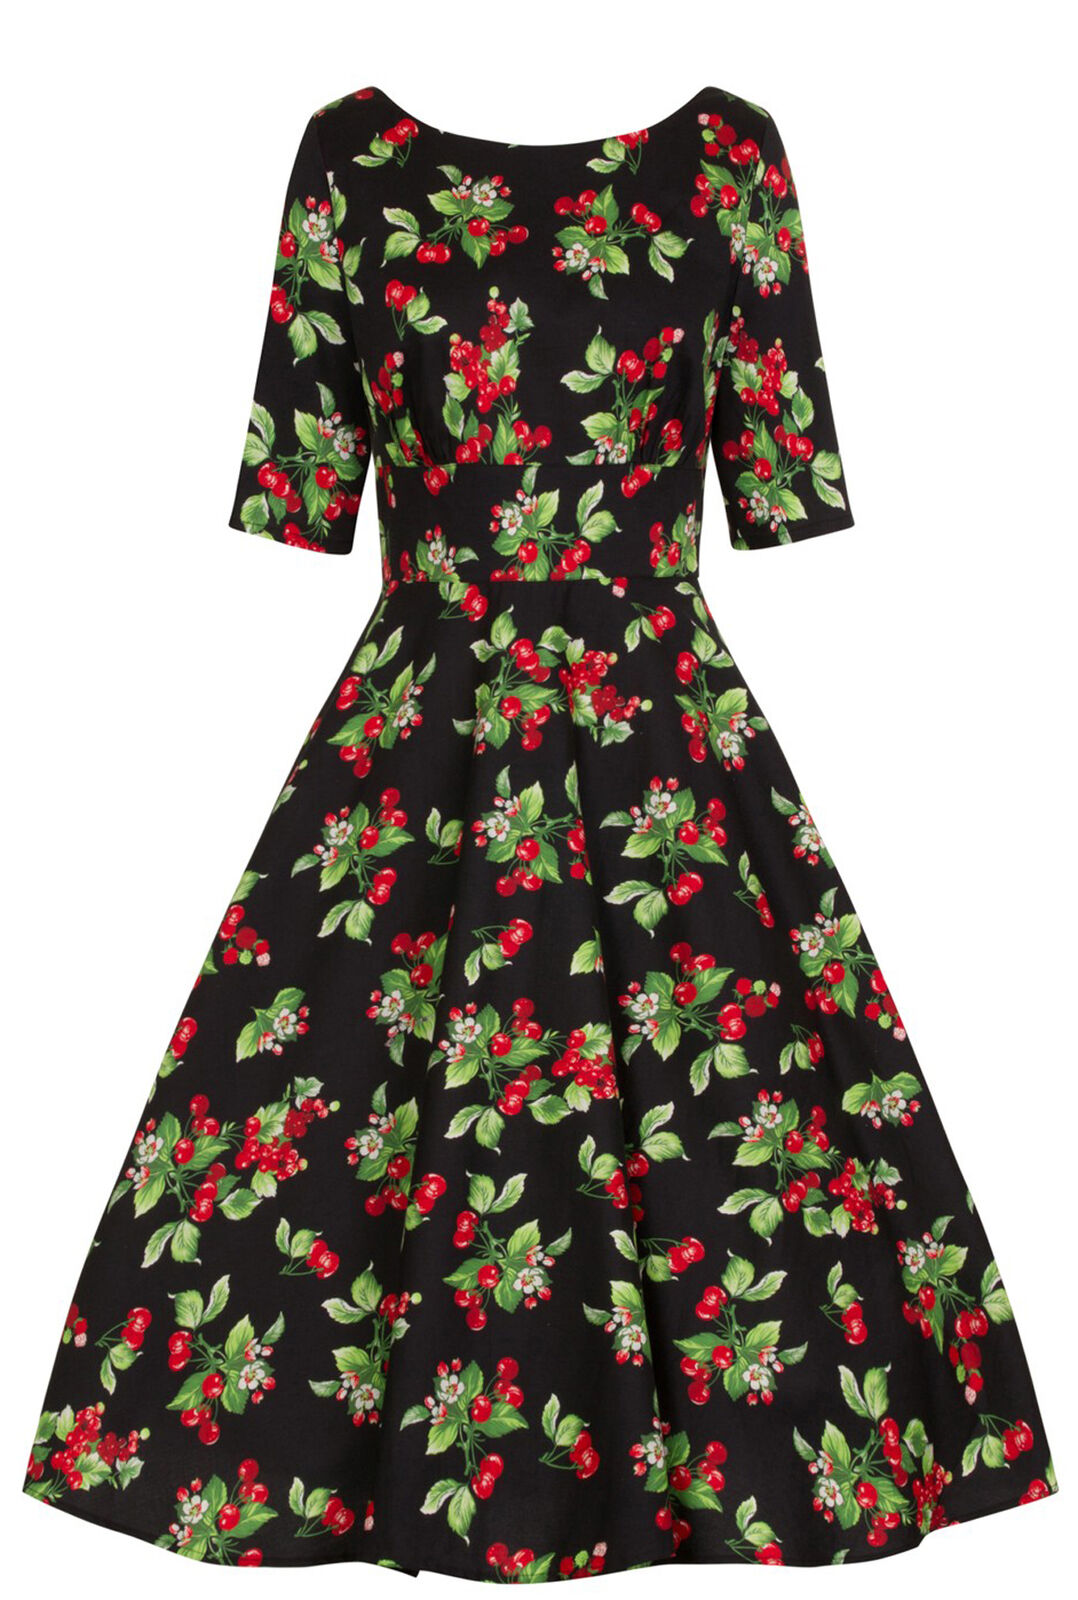 Hell Bunny CHERIEE Kirschen CHERRY Vintage Swing Dress Plus Größe Rockabilly